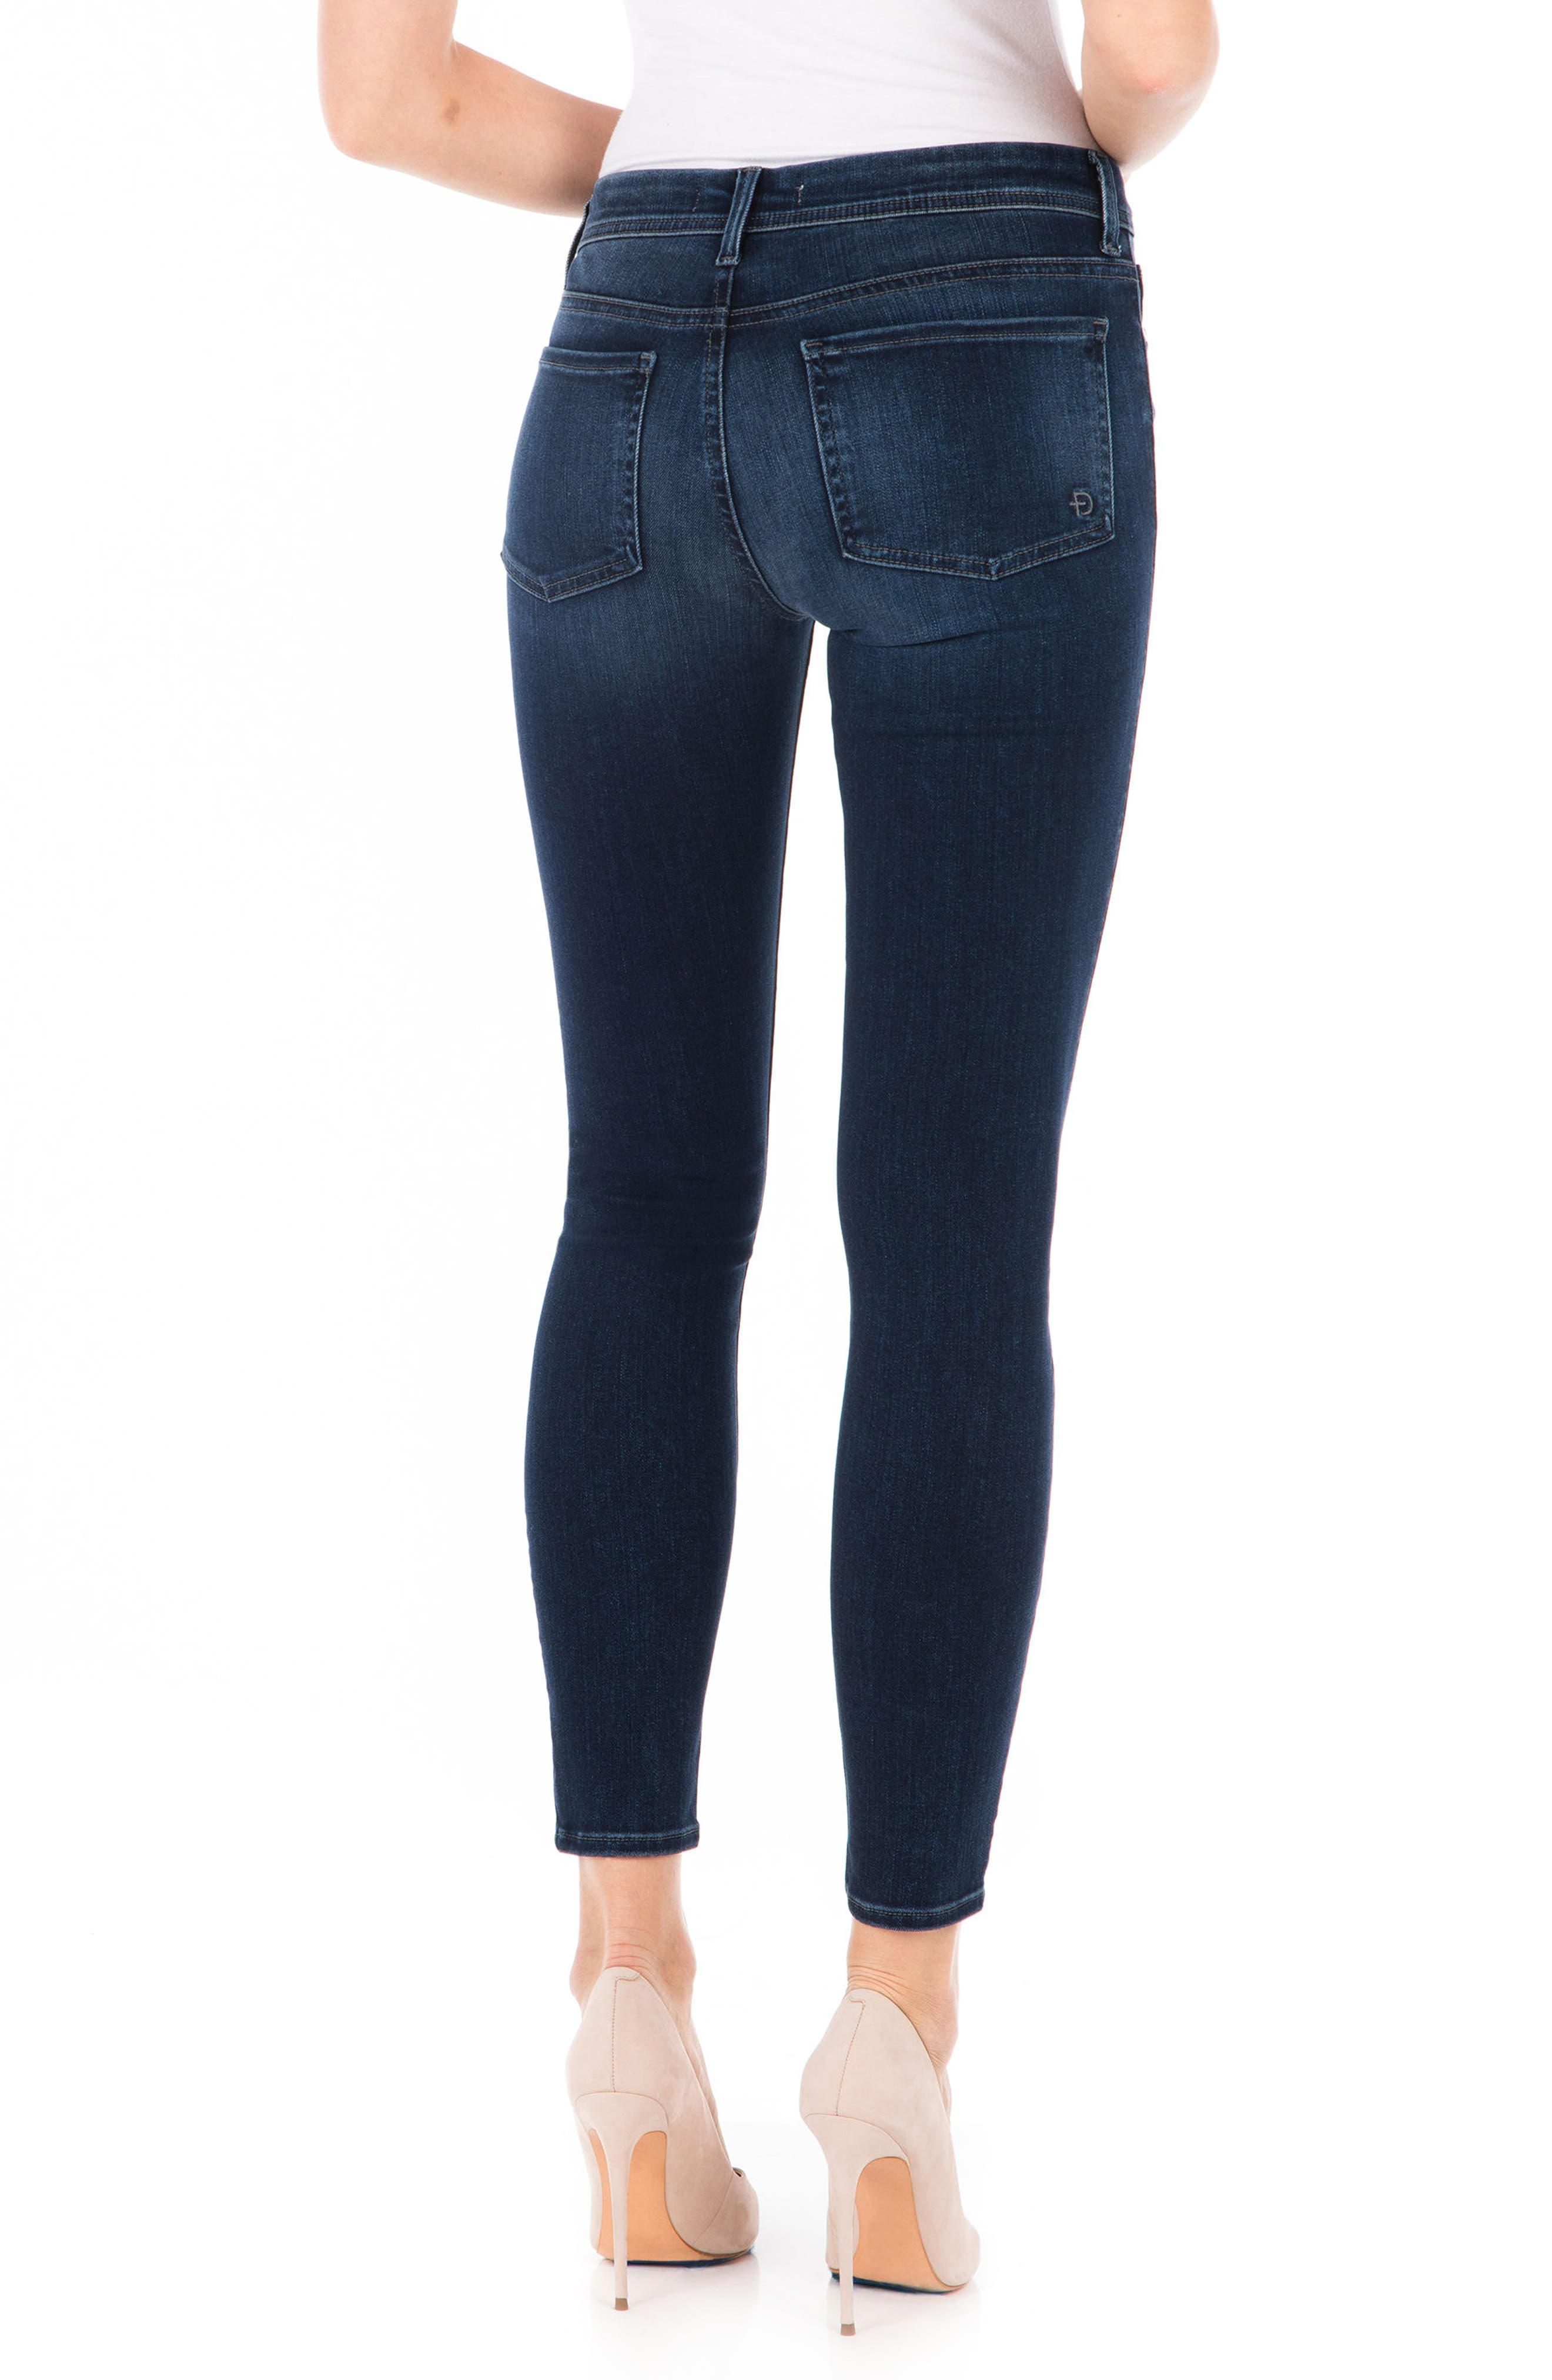 Sola Skinny Jeans,                             Alternate thumbnail 2, color,                             400